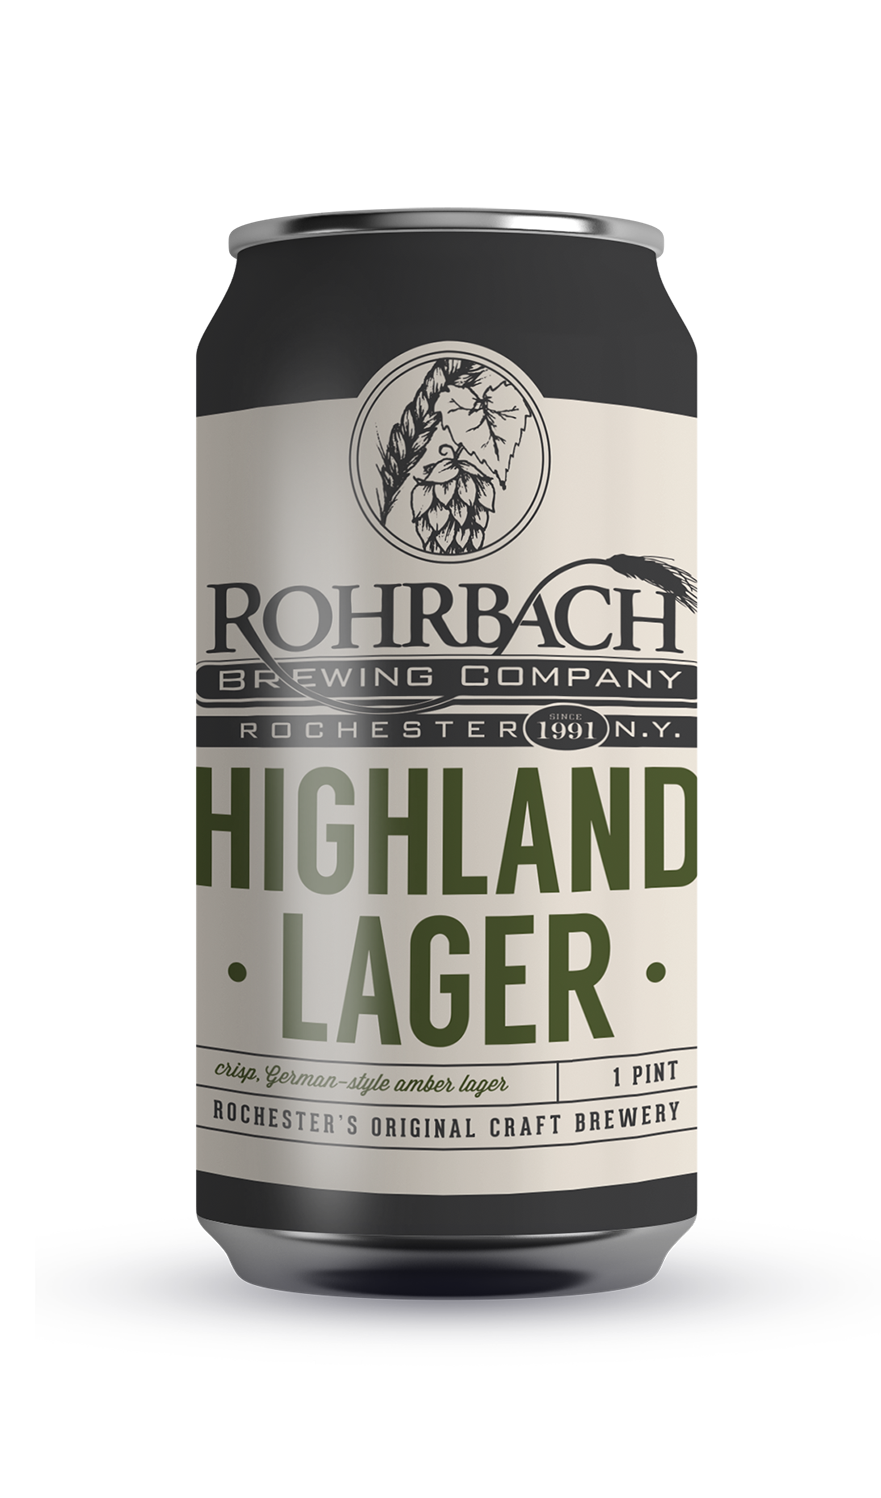 HIGHLAND LAGER  An amber lager brewed with Munich, Vienna, and wheat malts to give the beer a subtle toasty flavor.  ABV 5.0% | IBU 11 | SRM 20